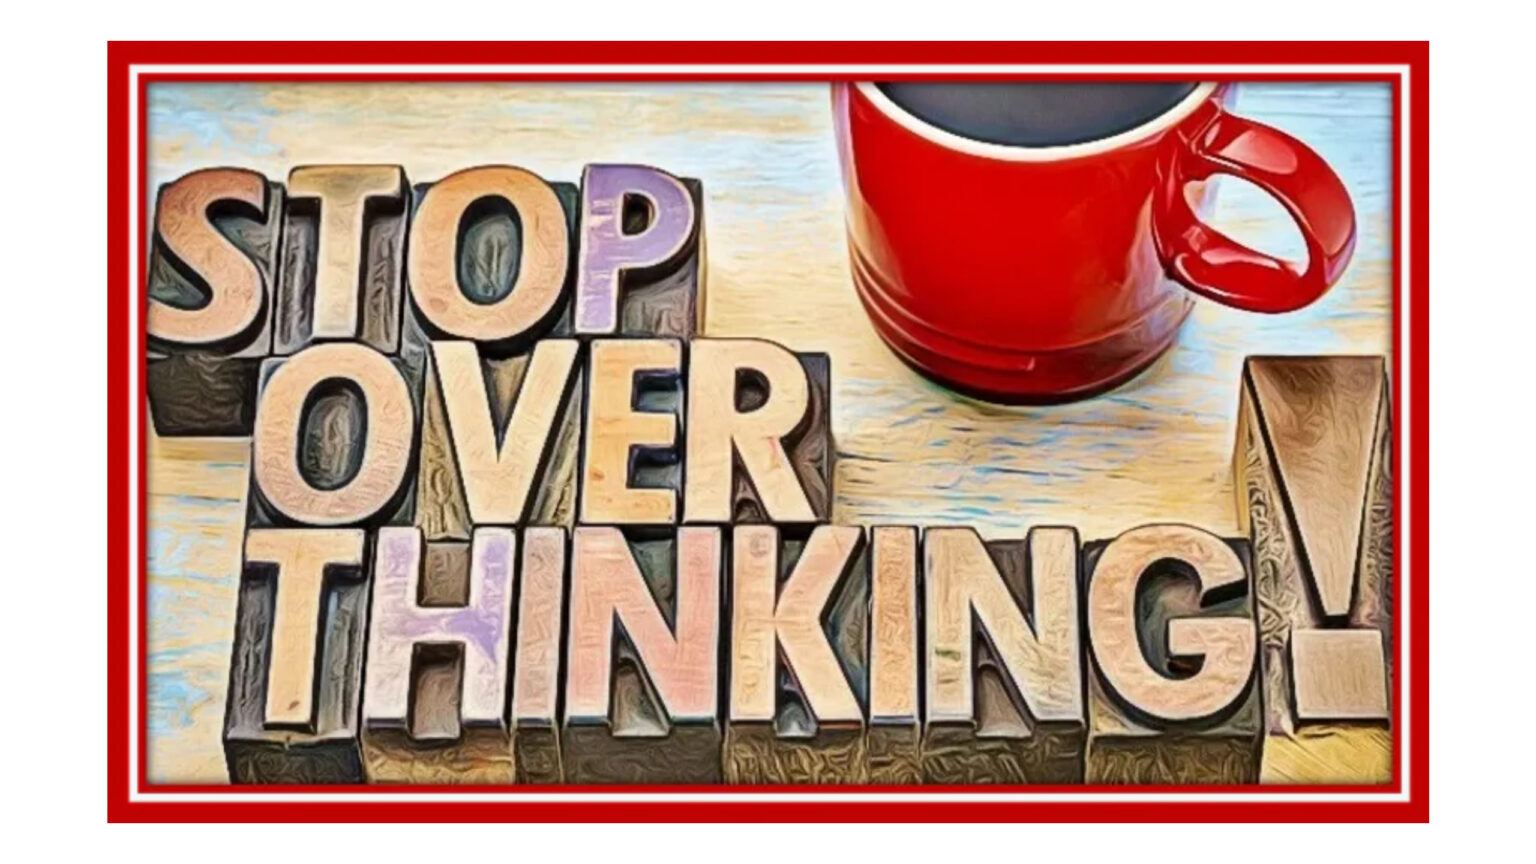 stop overthinking everything